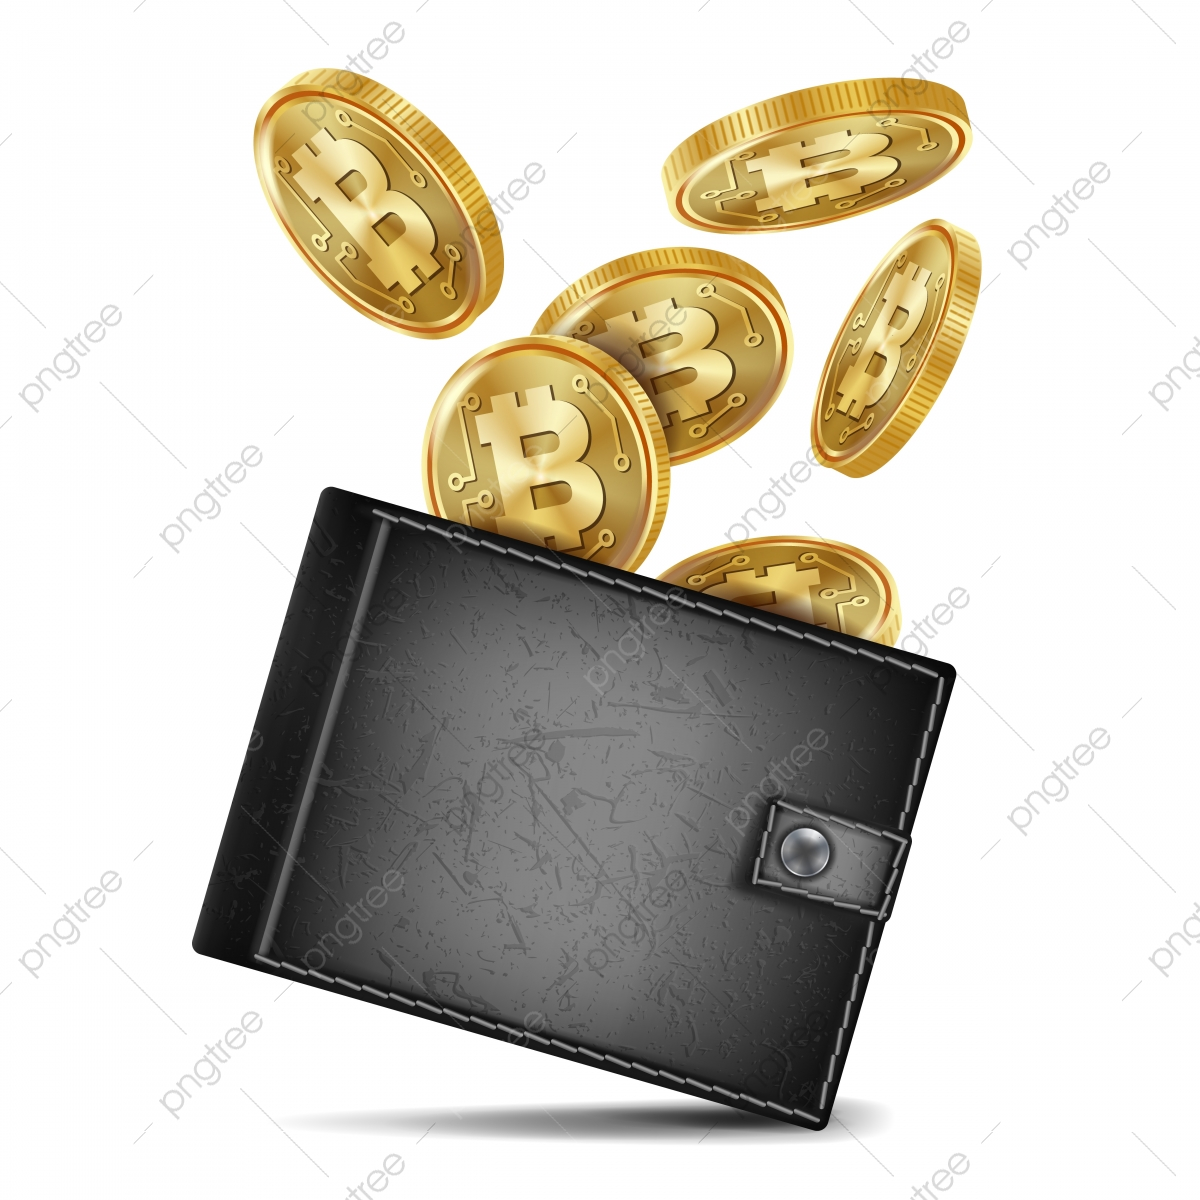 successful cryptocurrency coin